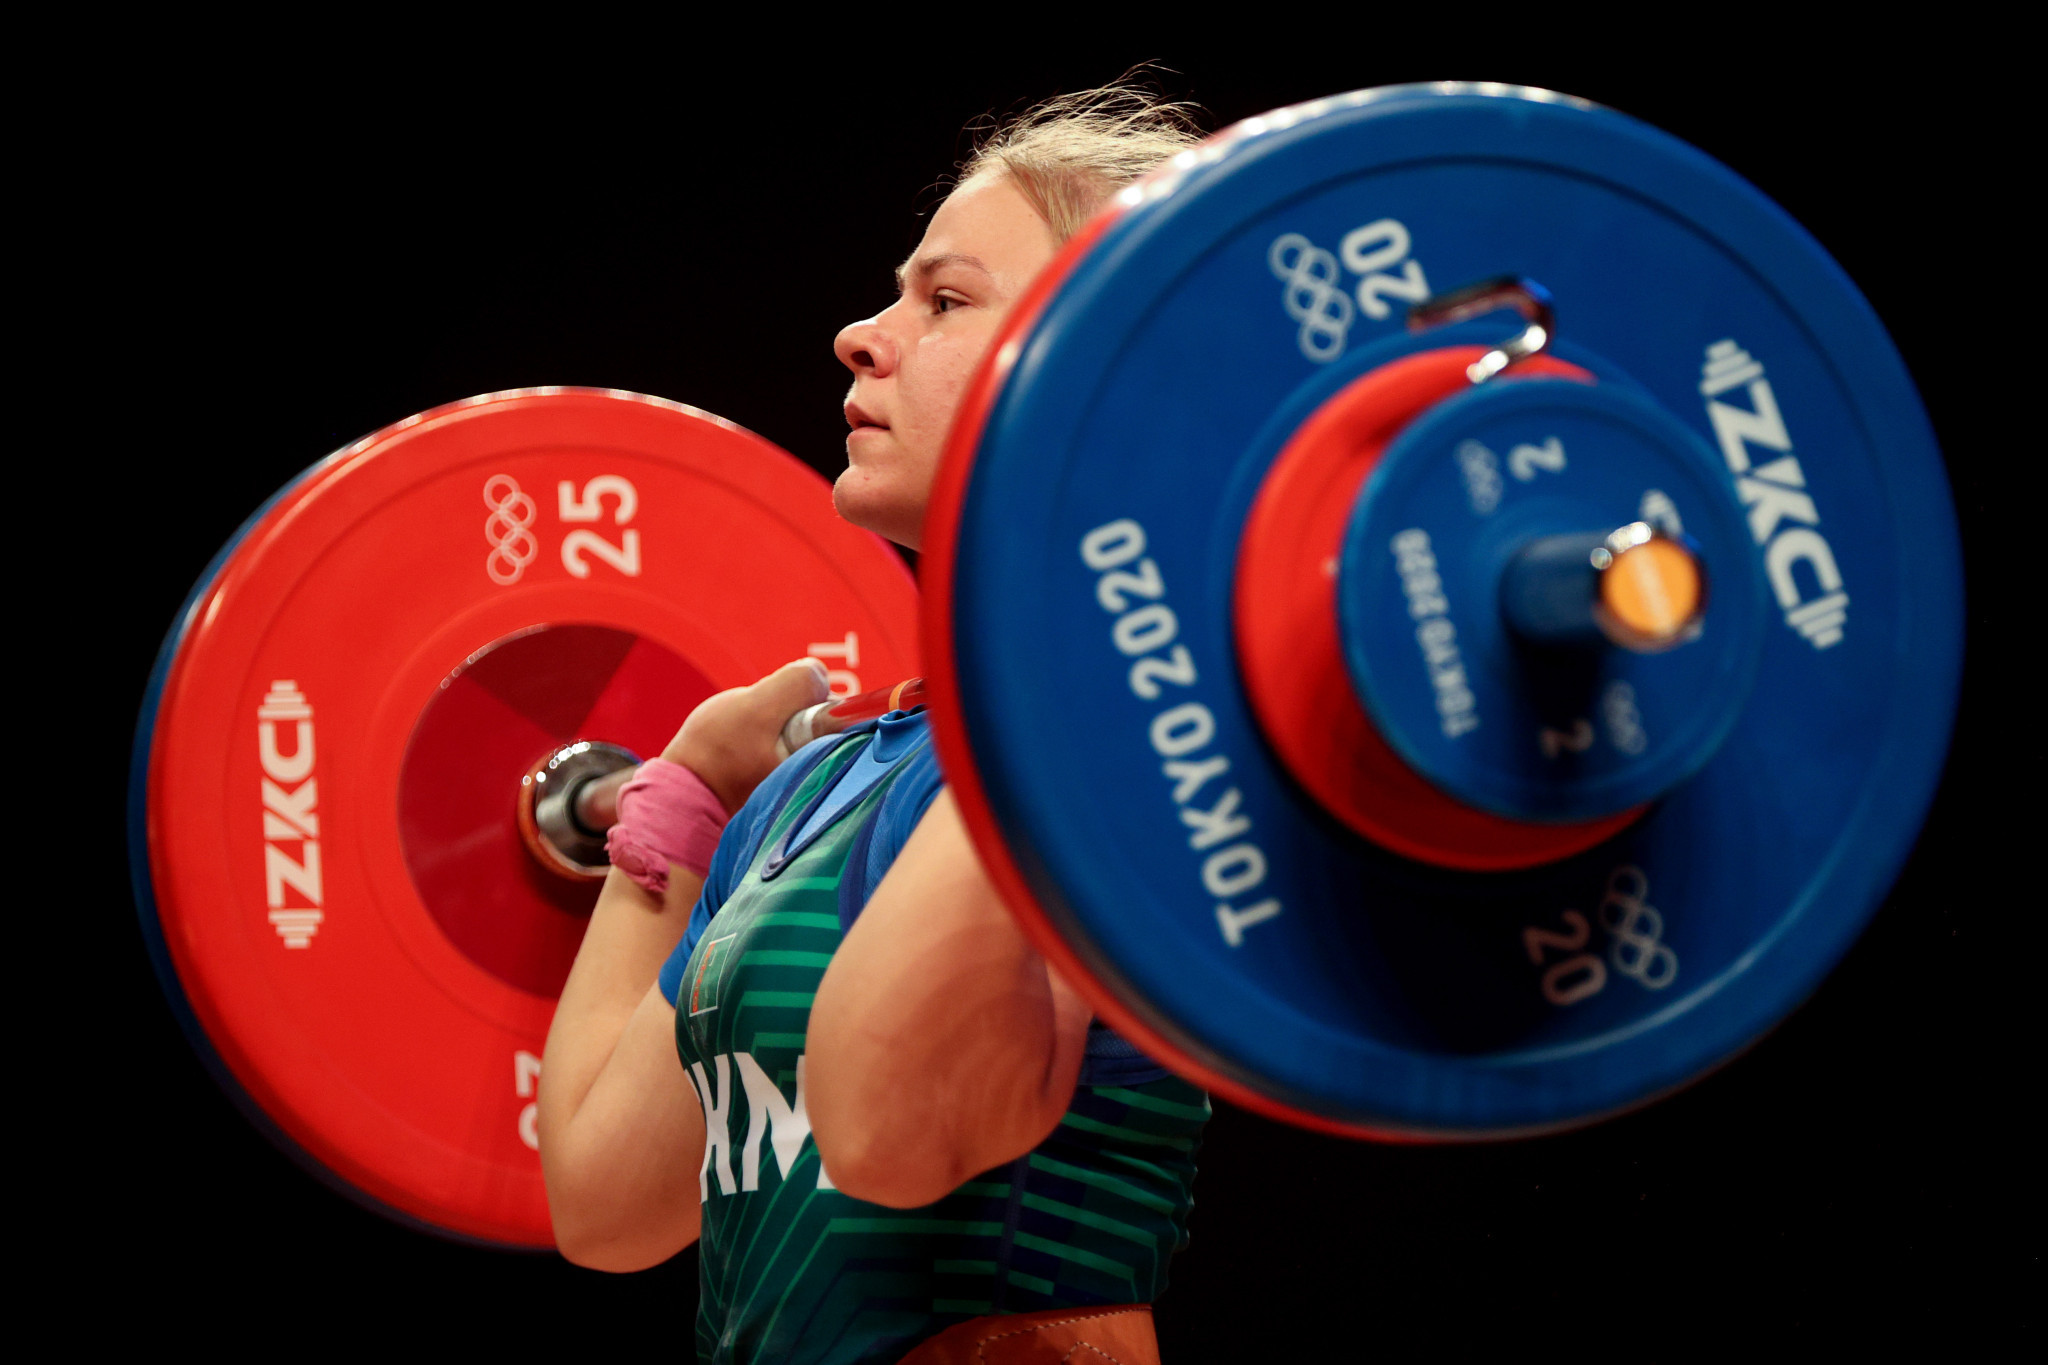 Polina Guryeva won the Olympic silver medal in the women's 59kg category at Tokyo 2020 ©Getty Images